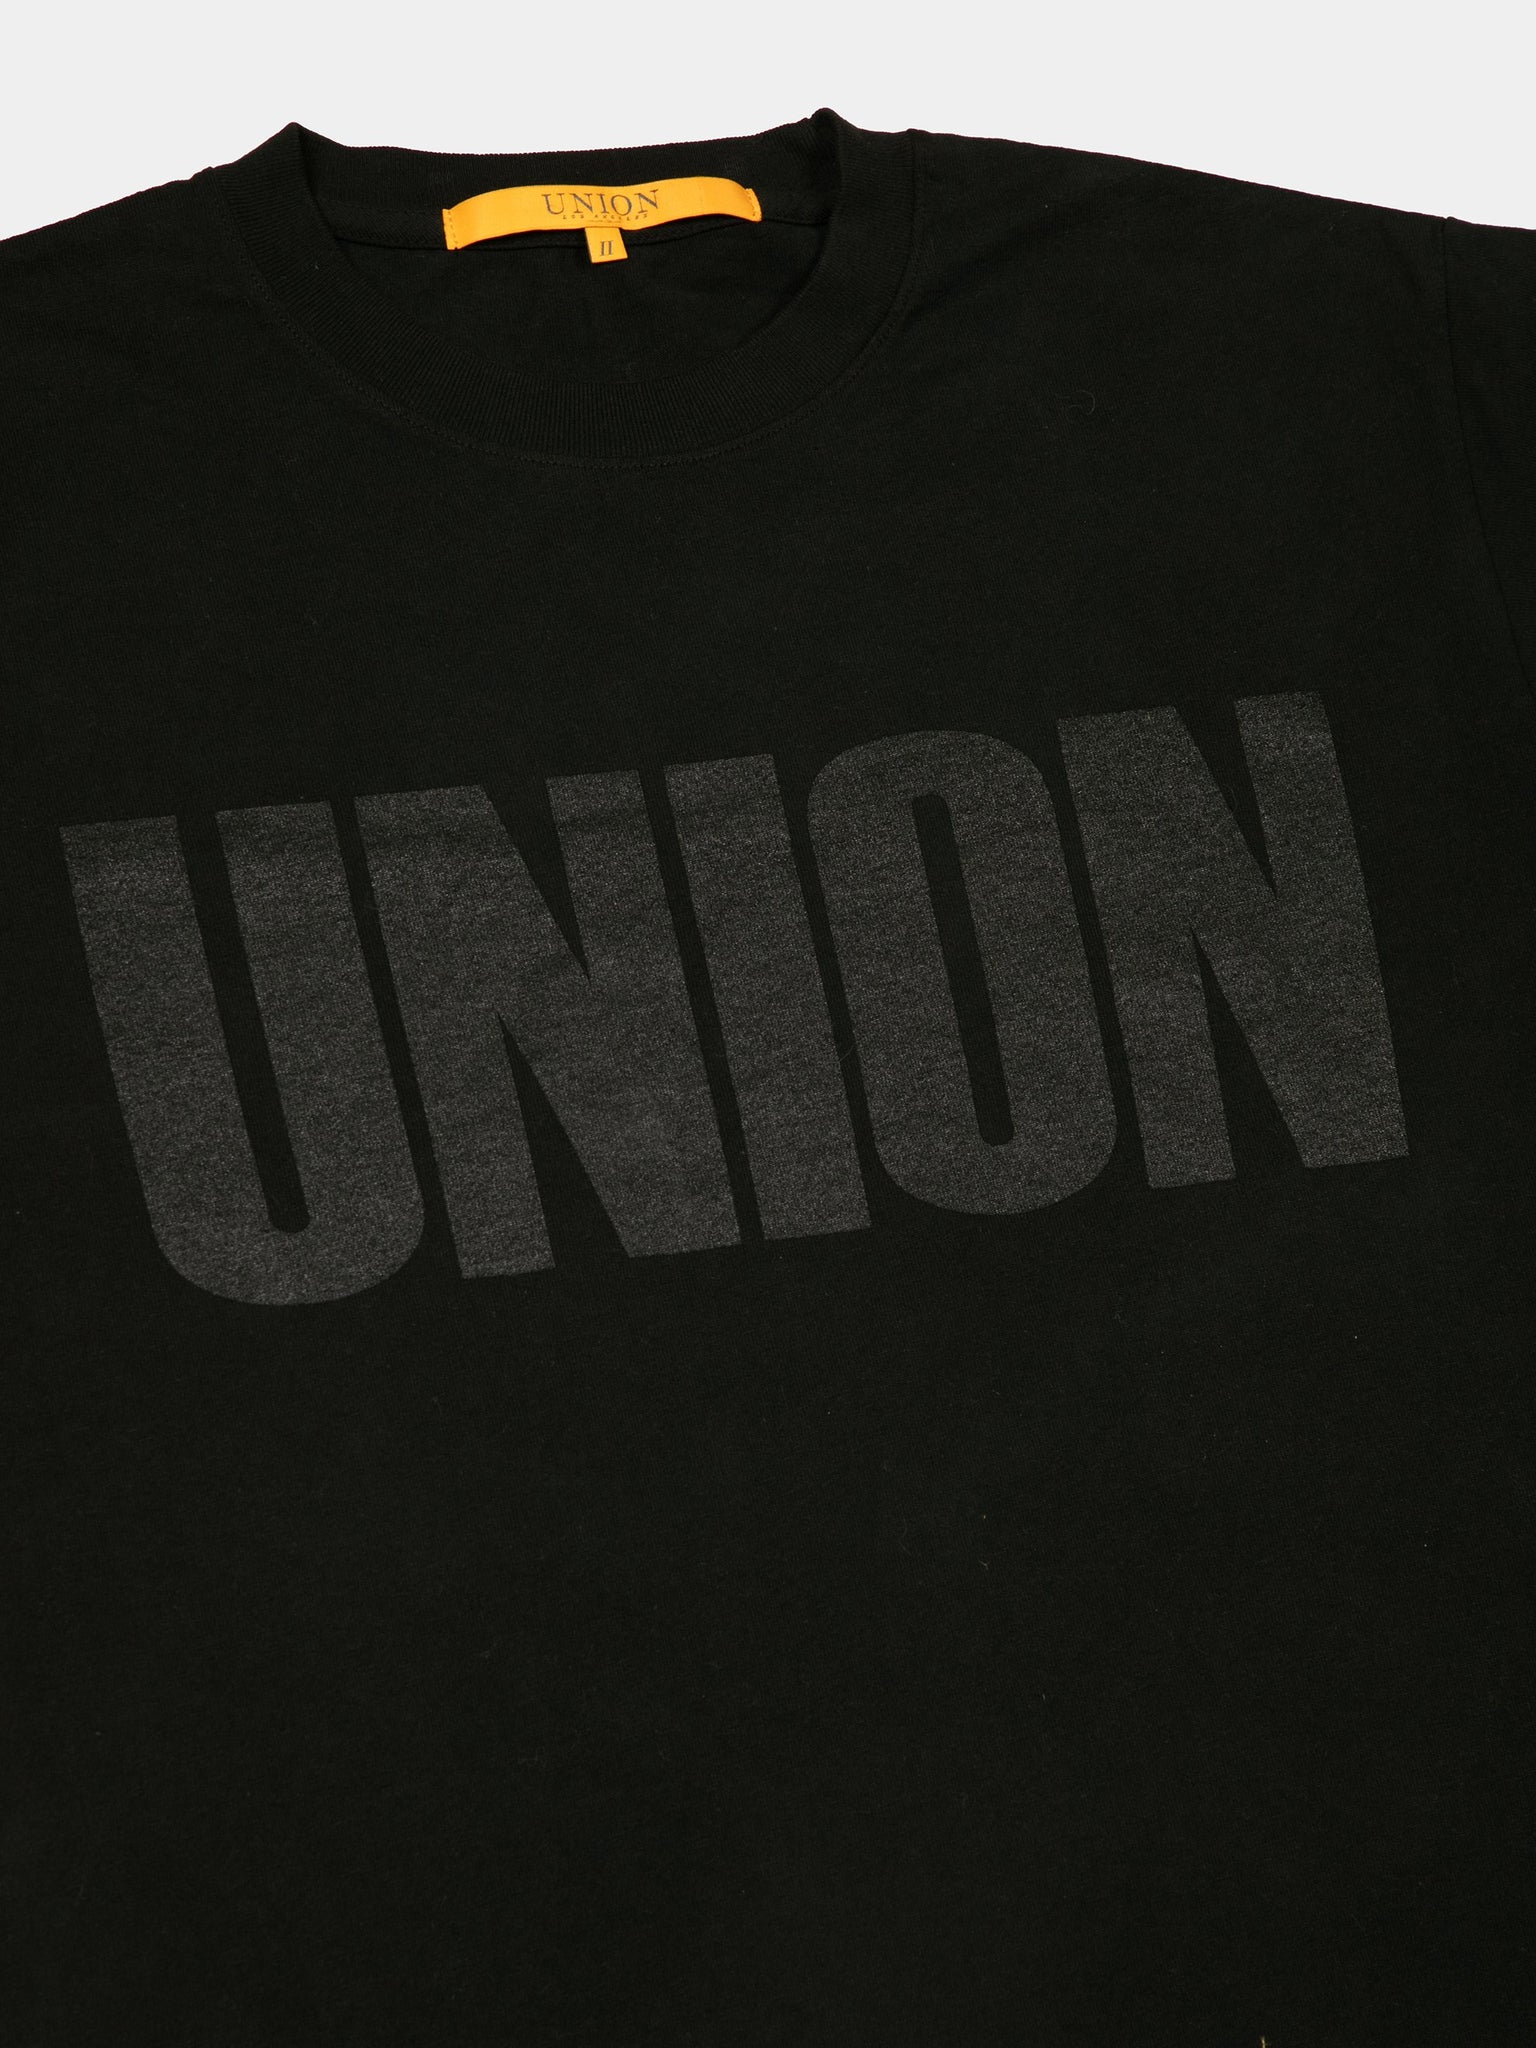 union-logo-t-shirt-2